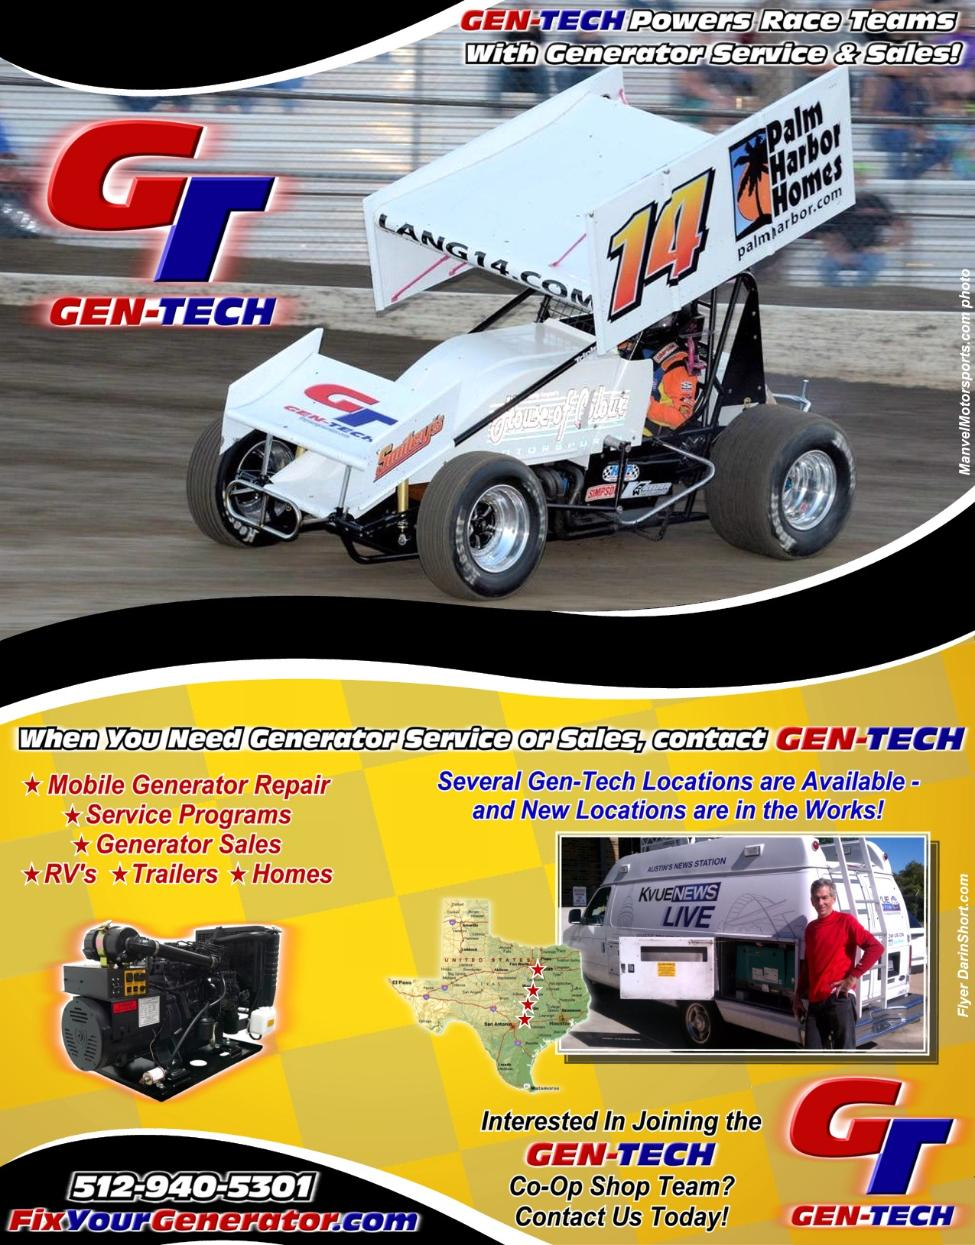 Welcome to FixYourGenerator com - the online home of GEN-TECH